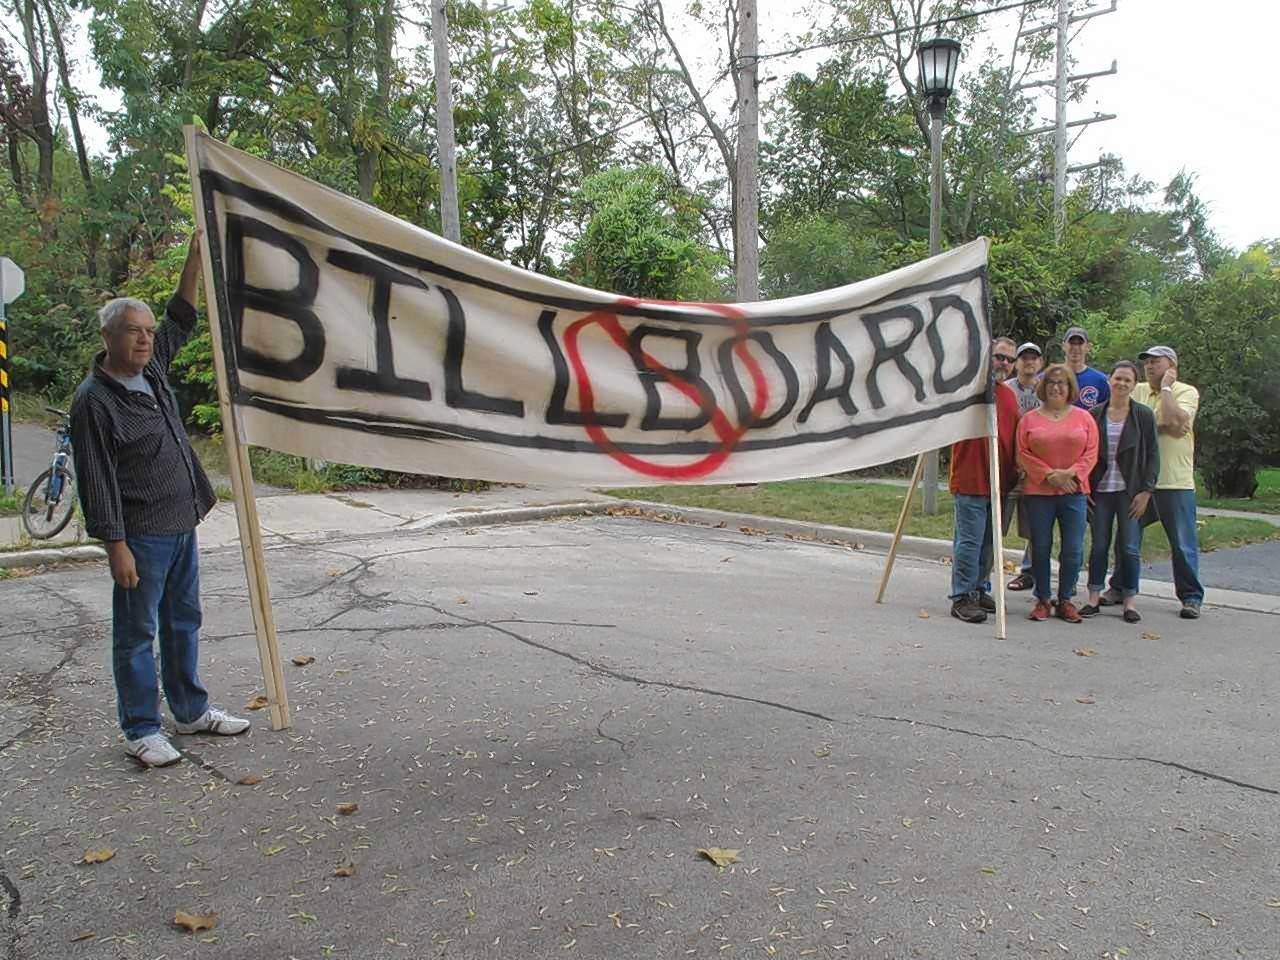 Lombard residents who spoke out against a proposal to put two billboards along I-355 convinced the village board and Lamar Companies to withdraw the proposal. The decision means no billboards will be located along the tollway in the village.